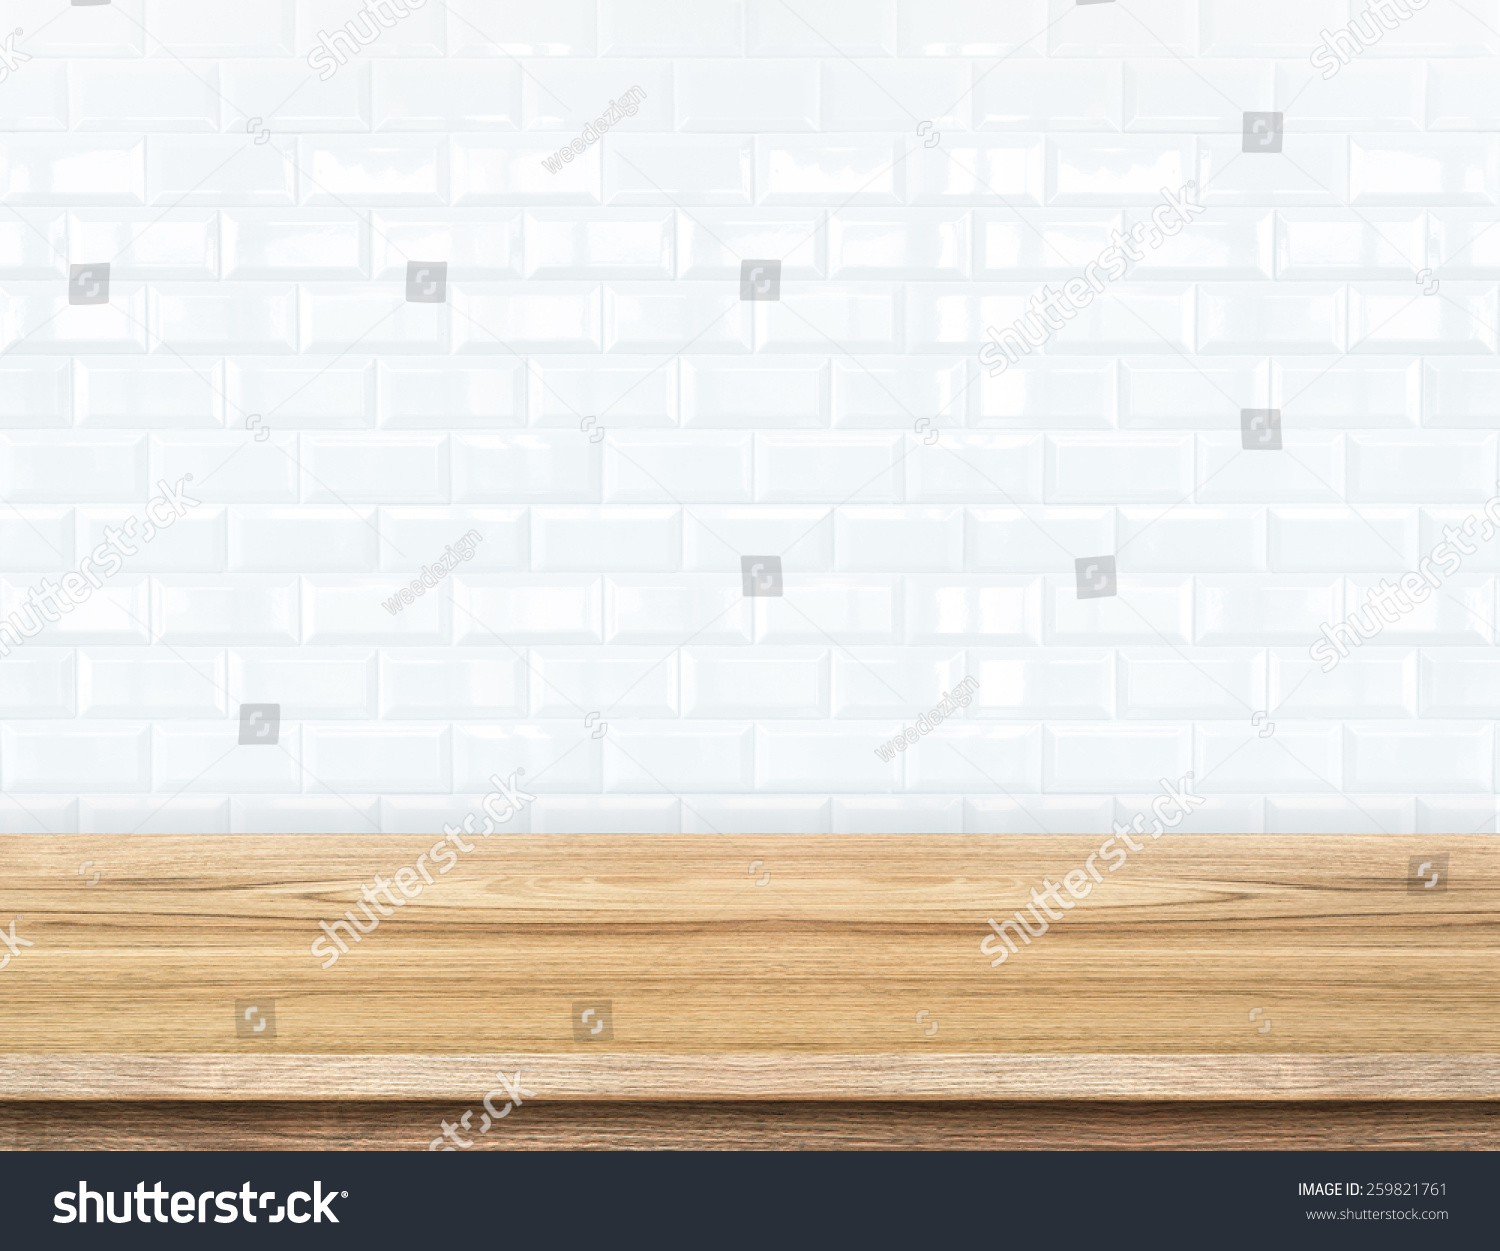 Empty wood table ceramic tile brick stock photo 259821761 empty wood table and ceramic tile brick wall in background product display template dailygadgetfo Gallery